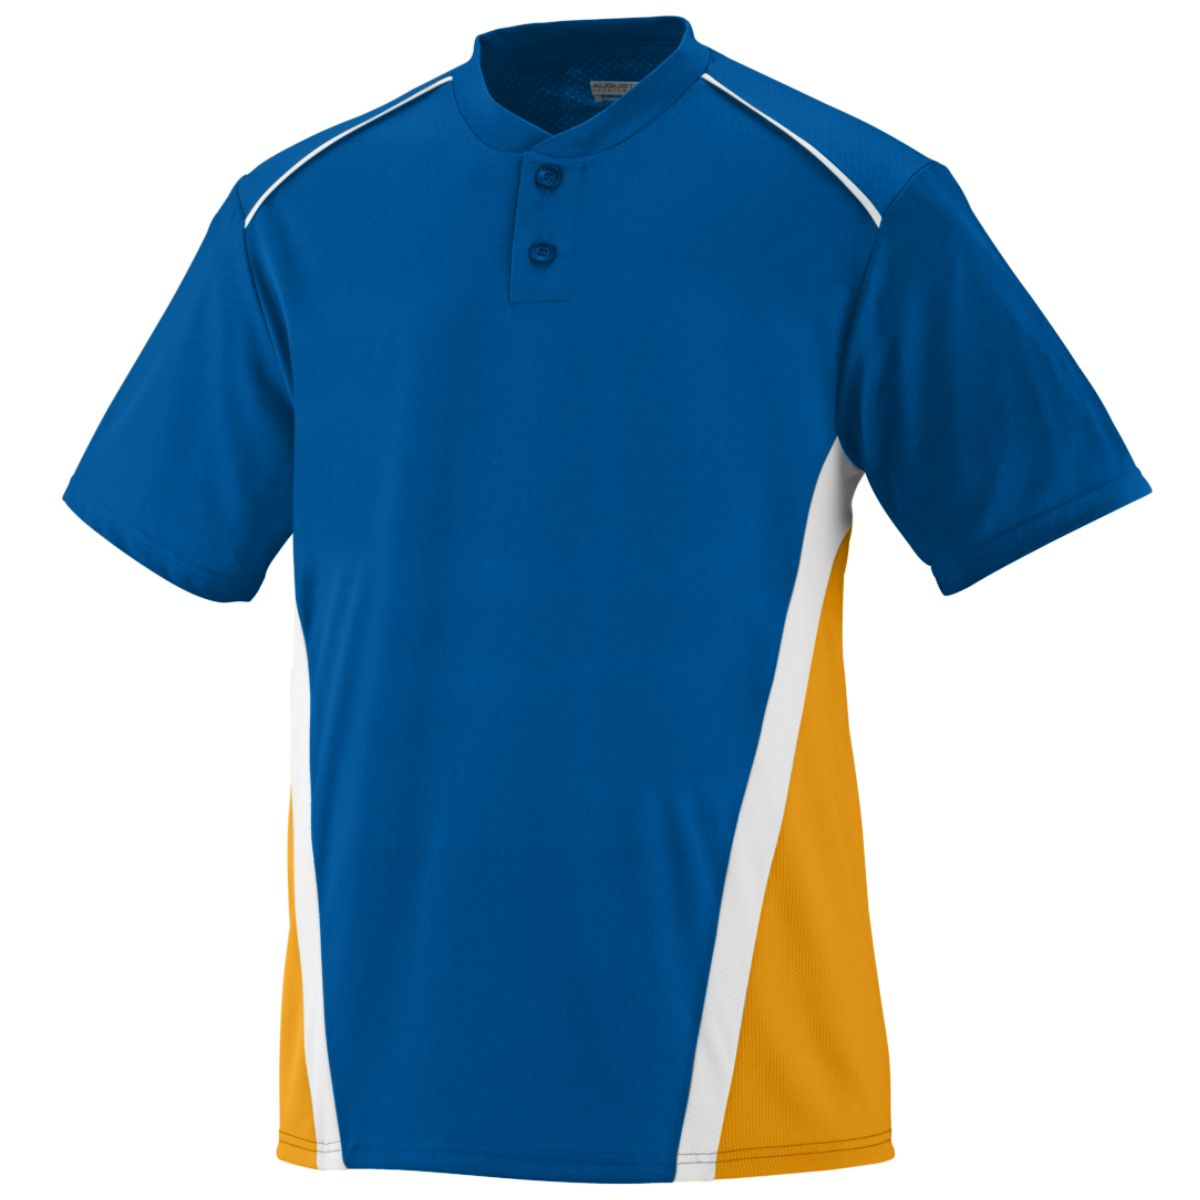 Augusta Rbi Jersey Ro/Gd/Wh Xl - image 1 of 1